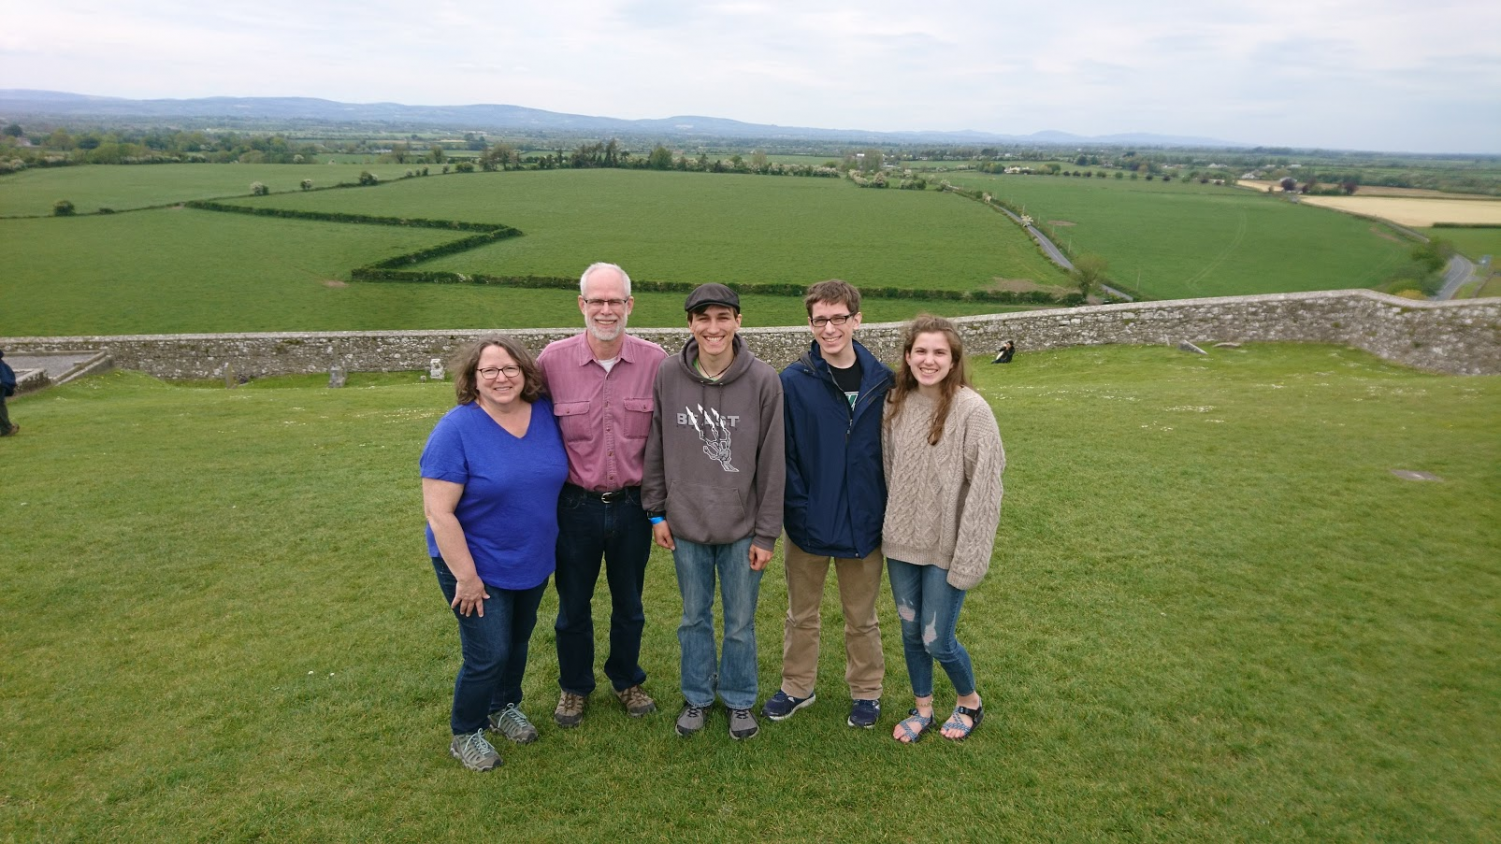 The Eddinger family went to Ireland to visit Jack (middle) during his study abroad semester.